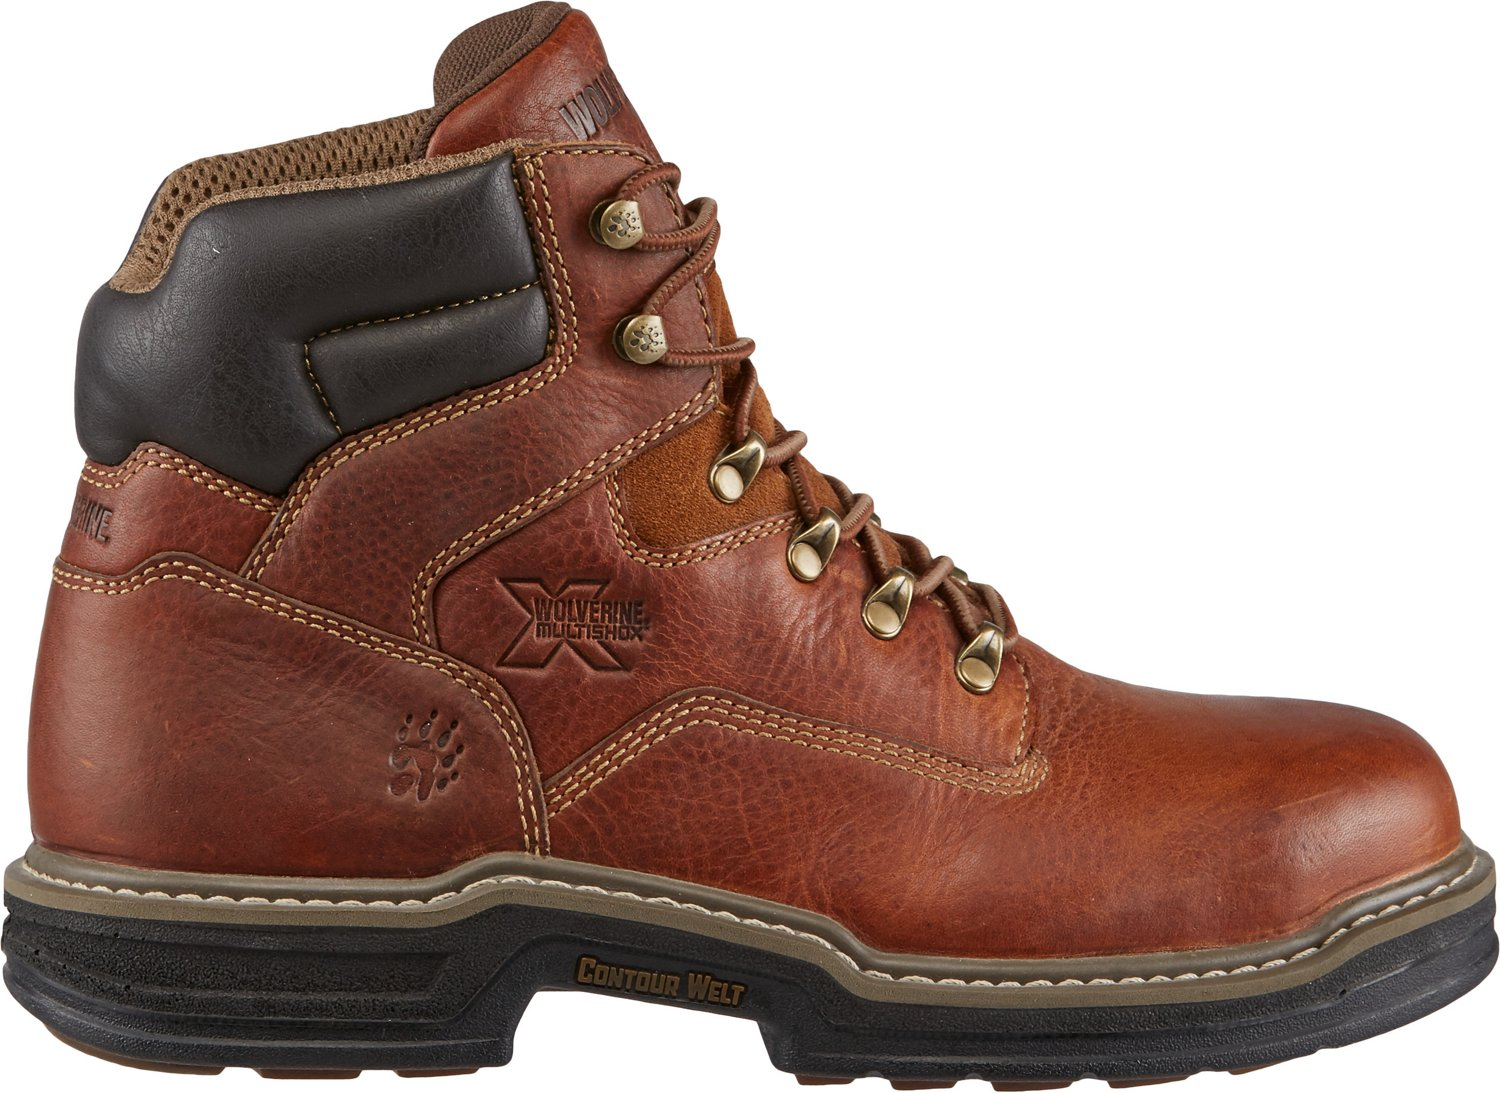 db60e65936a Wolverine Men's Raider EH Steel Toe Lace Up Work Boots